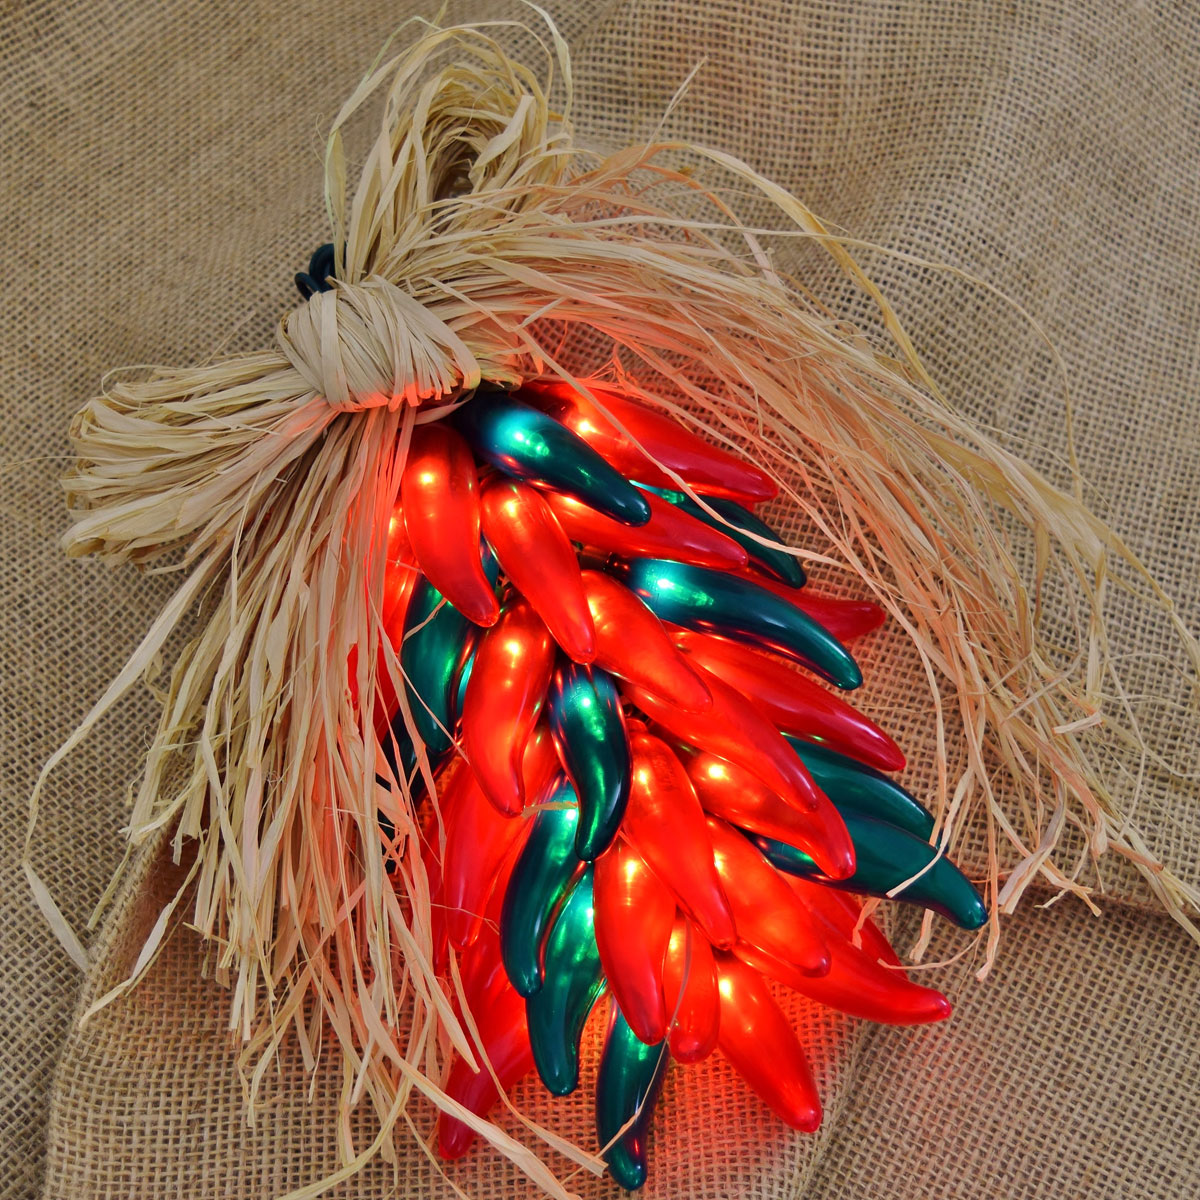 Red Green Chili Pepper Ristra Lights - 35 Lights